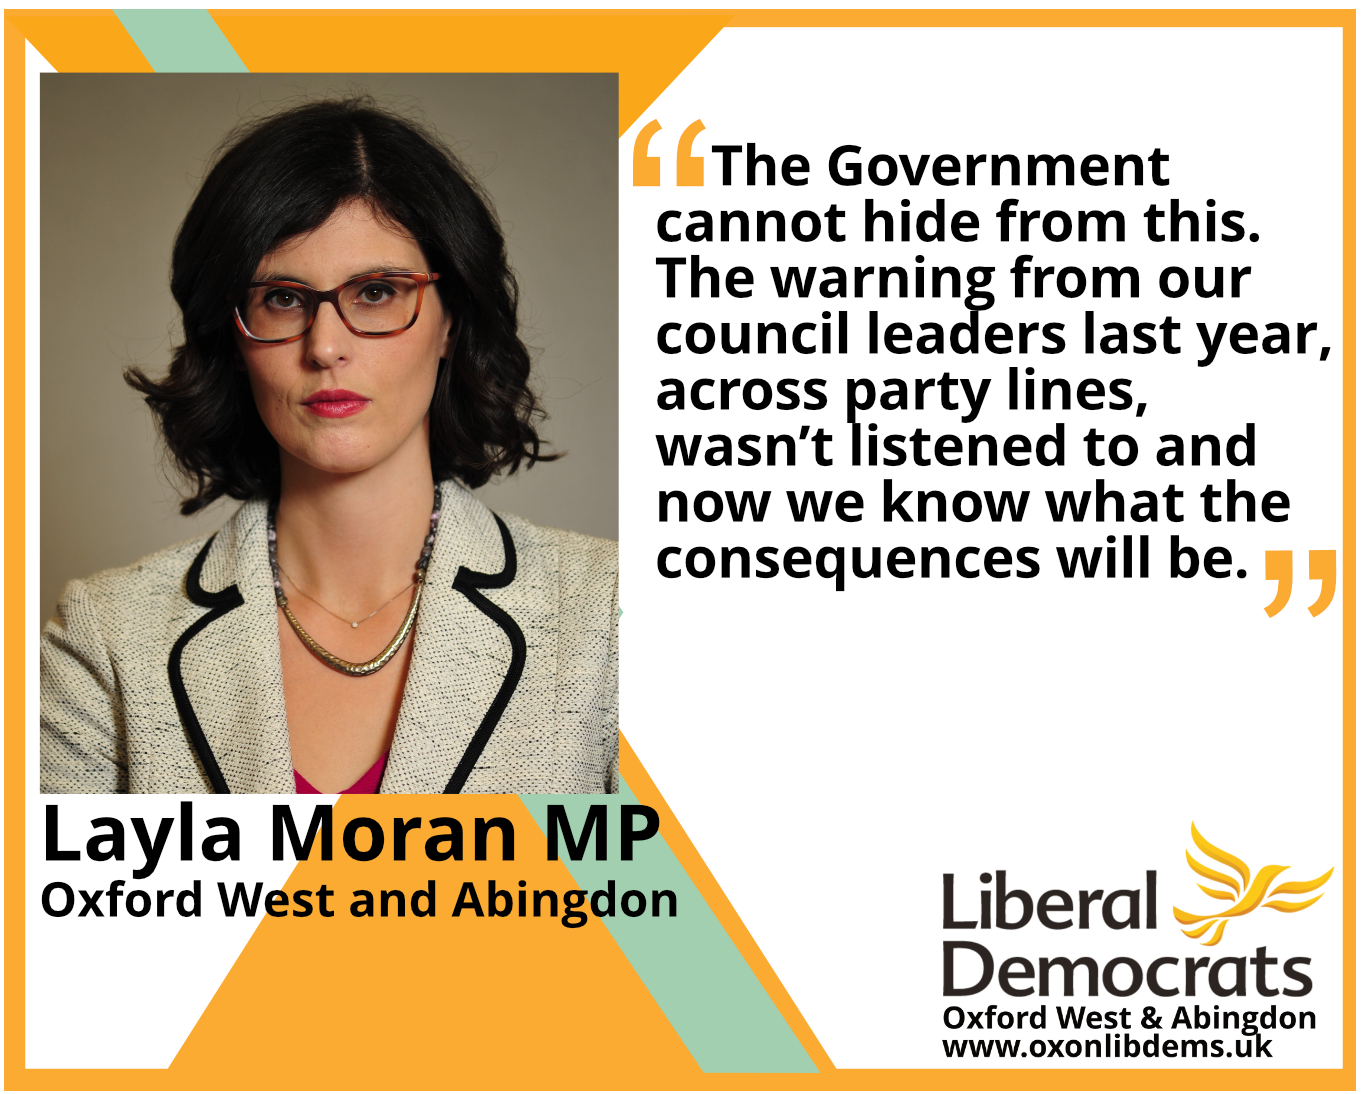 Everything from our leisure and community arts centres to adult social care is under threat because of the financial shortfall and the sheer uncertainty.